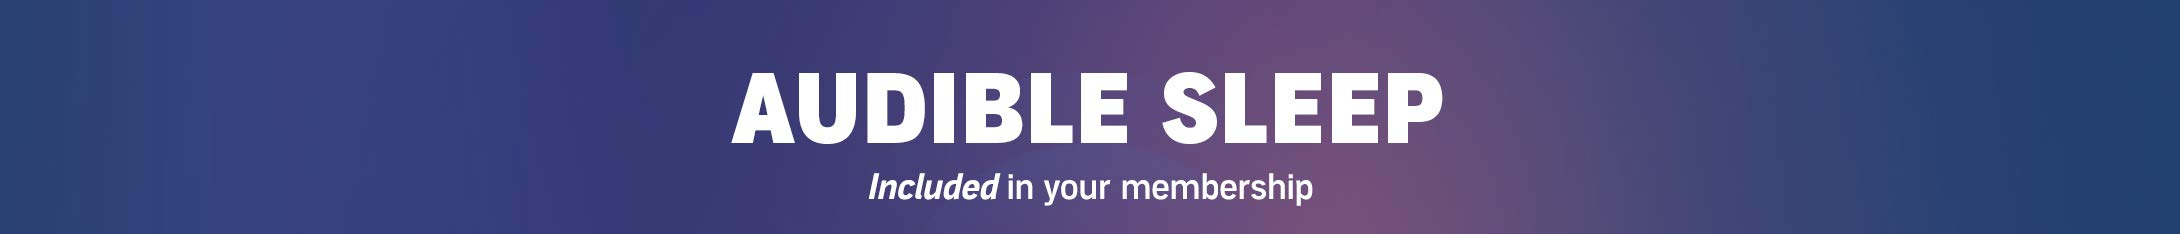 Audible Sleep - Included in your membership.